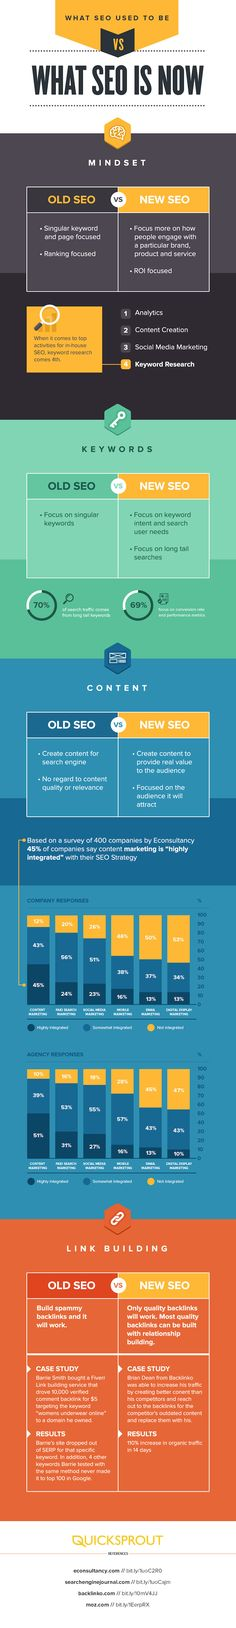 With Panda, Penguin and all the other Google updates, SEO has changed over the years. What used to work doesn't anymore.  So, how do you know what you shoul